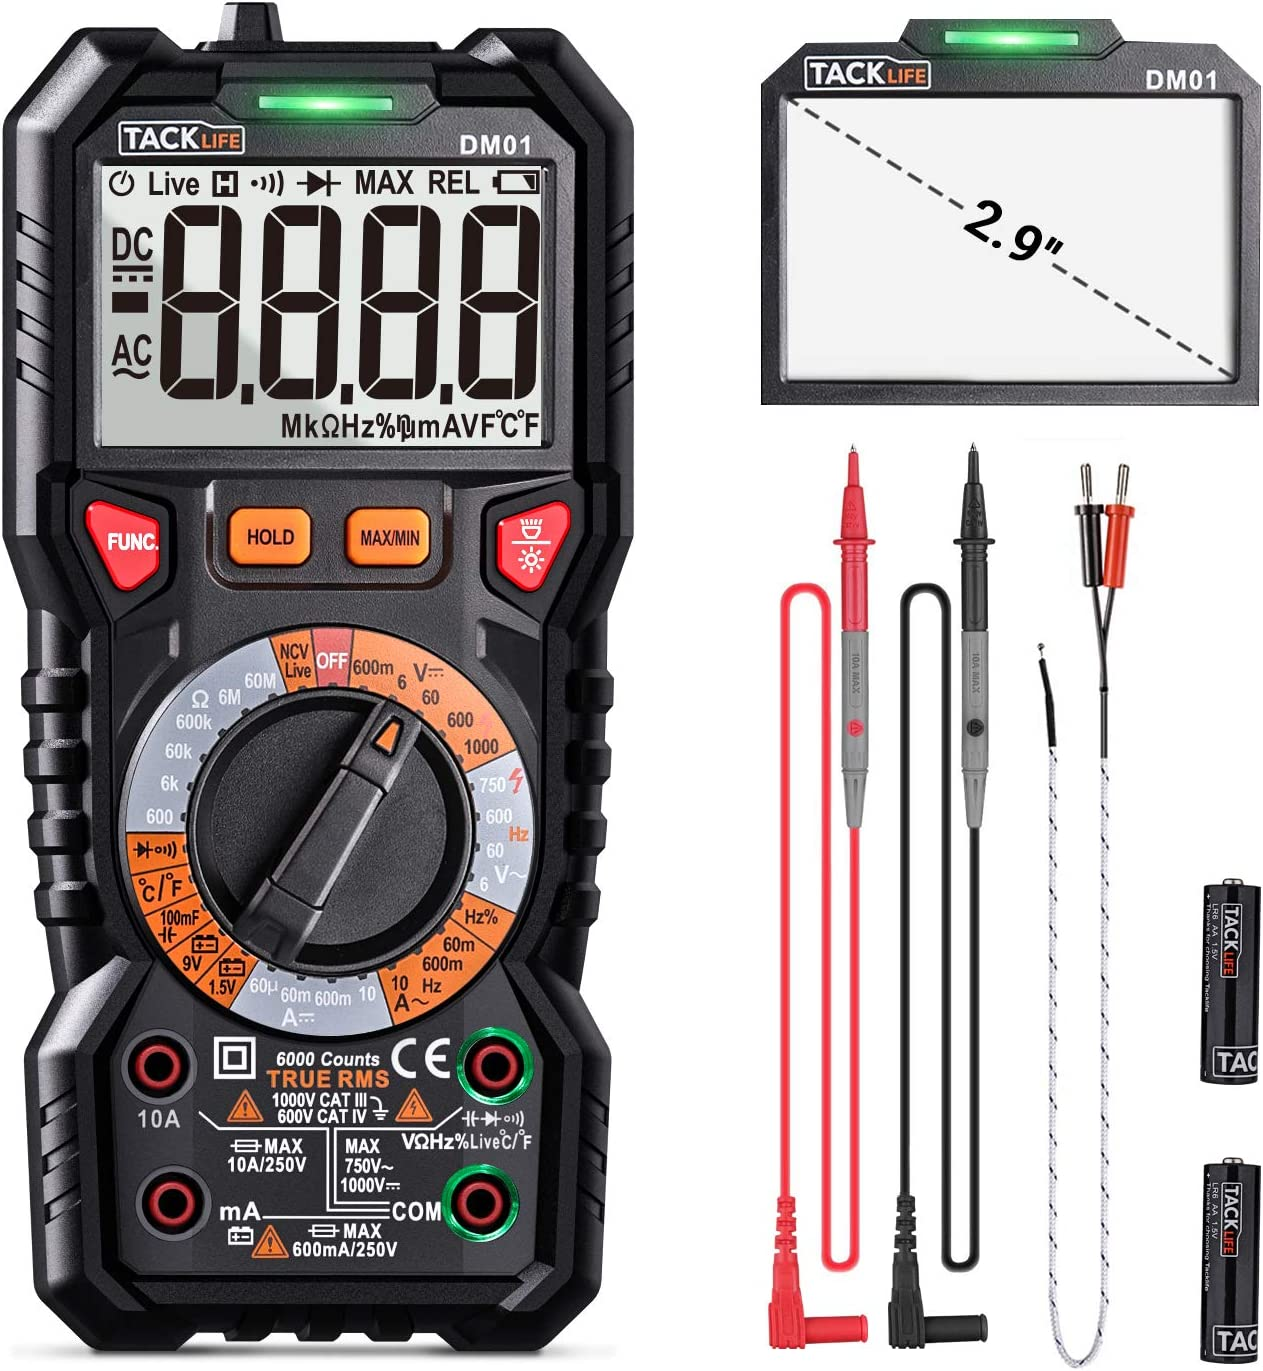 Digital Multimeter TRMS 6000 Counts LED Intelligent Indicator Jack Manul Ranging Measuring ACDC VoltageACDC CurrentResistanceCapacitanceFrequencyDutyD Online at Kapruka | Product# gsitem1455